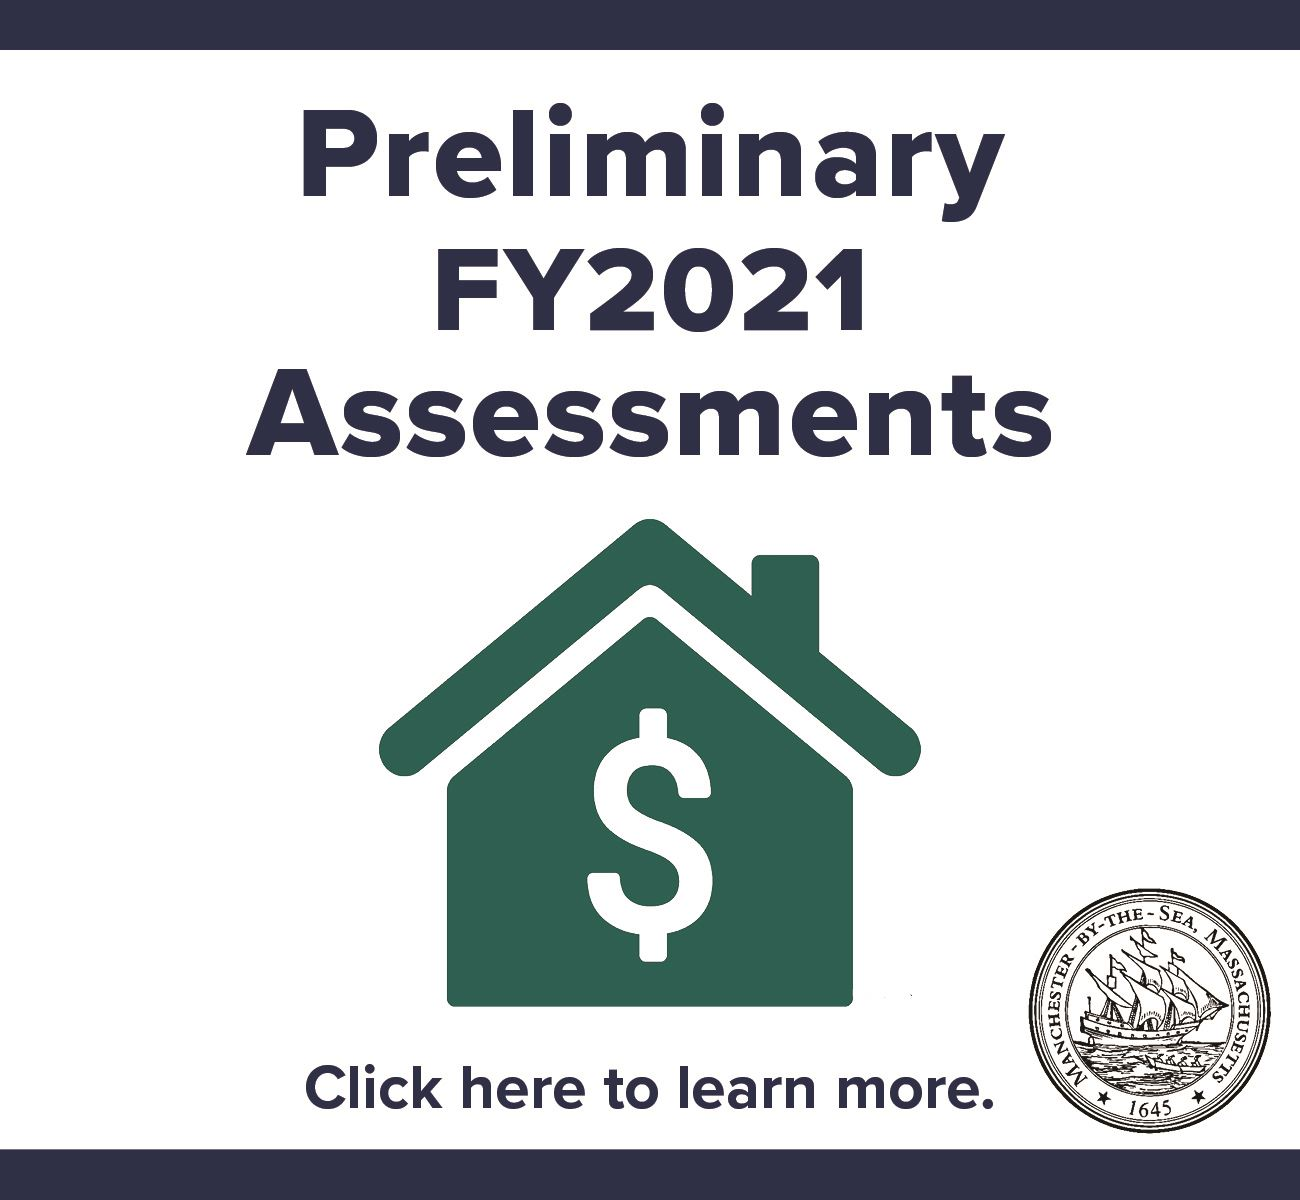 Preliminary 2021 Assessments